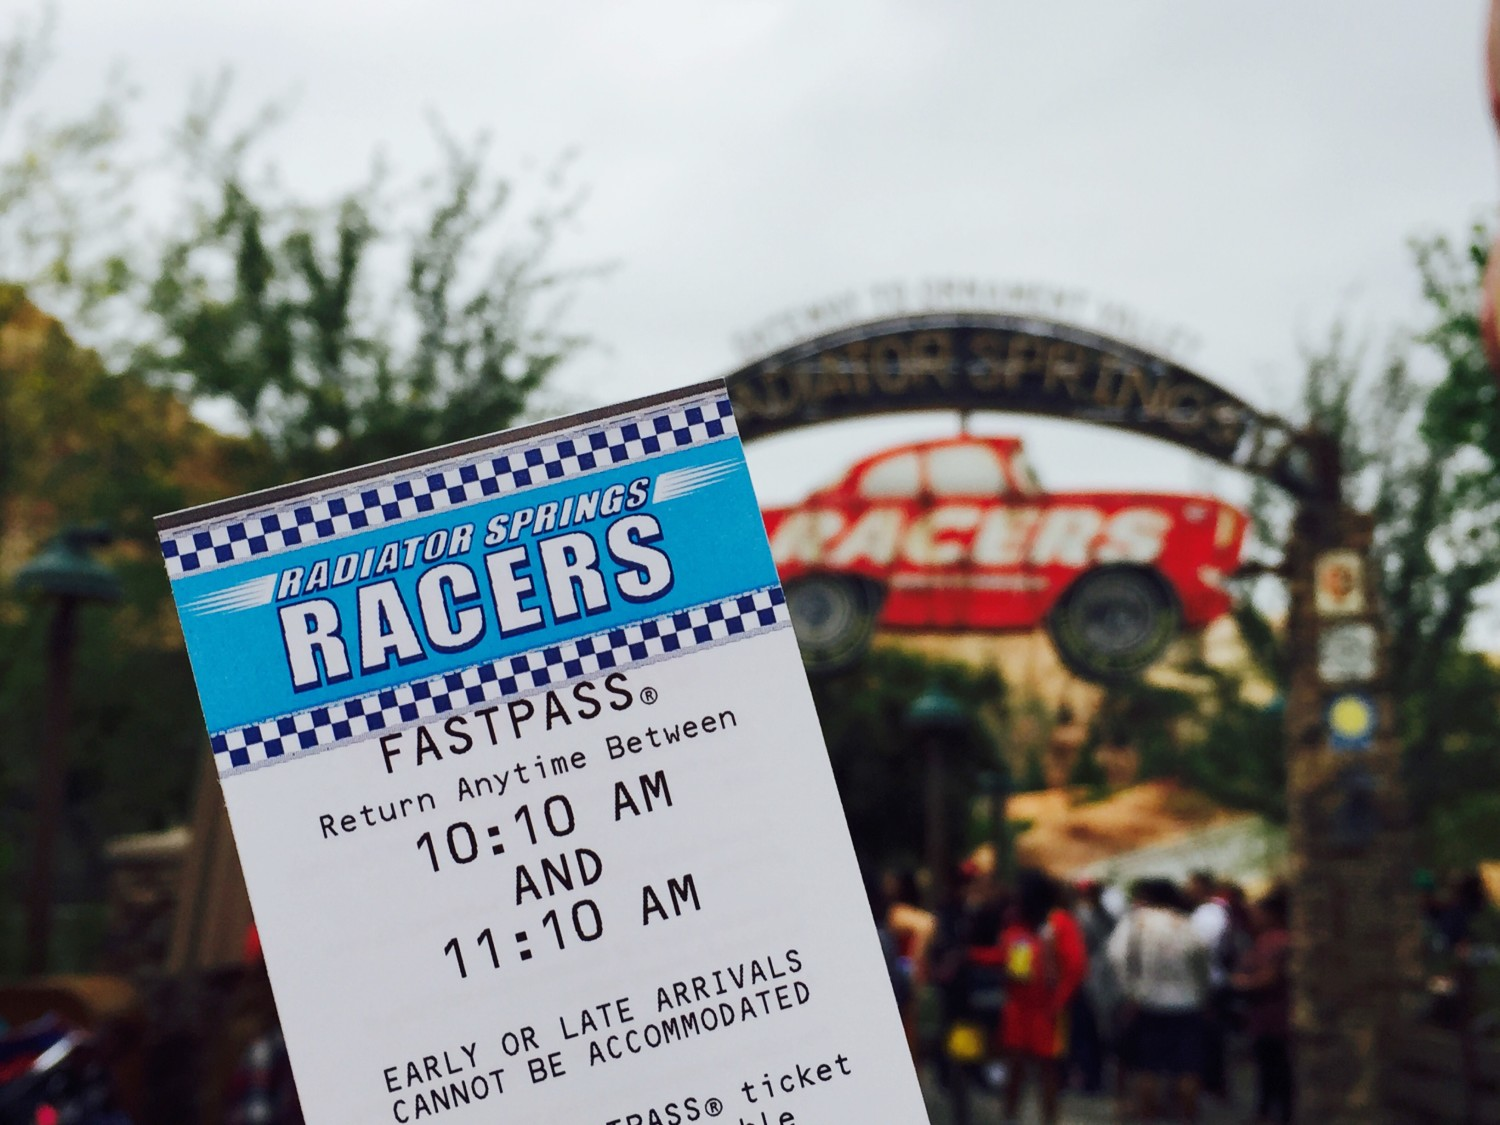 Disney California Adventure Radiator Springs Racers FastPass